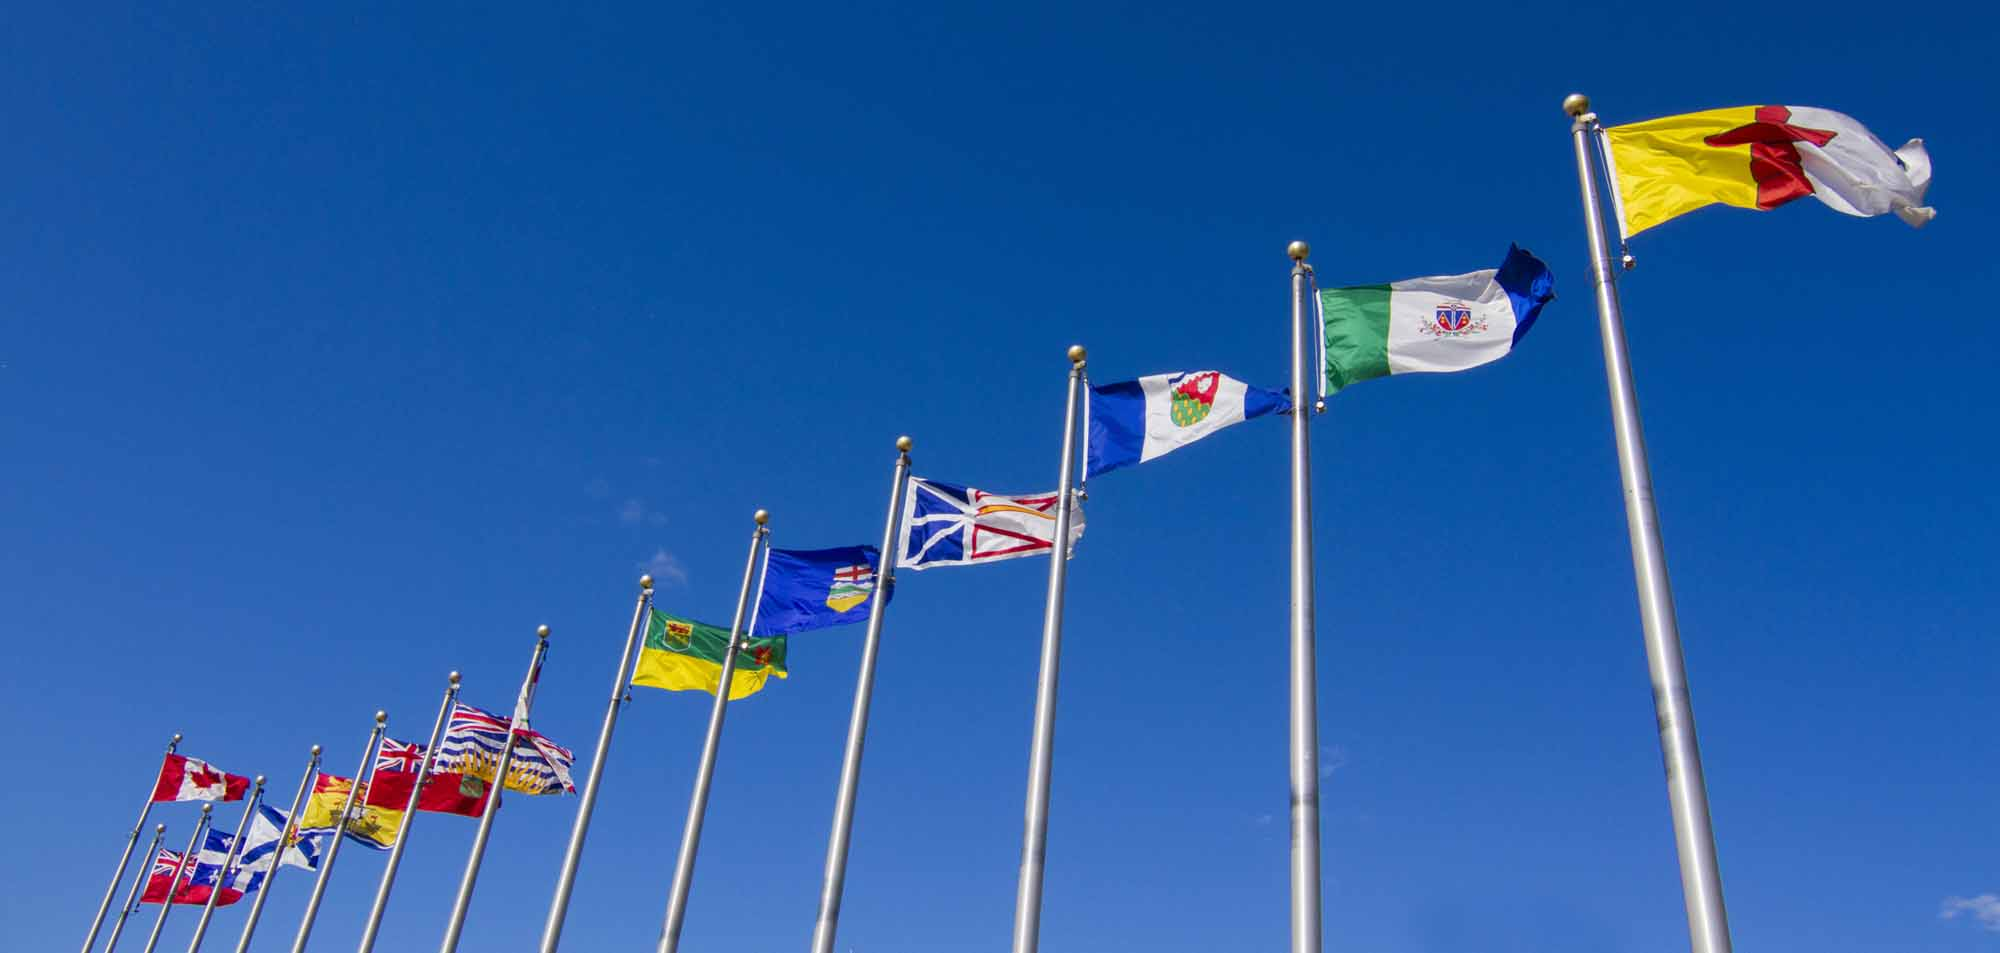 National/Provincial and Territorial Flags